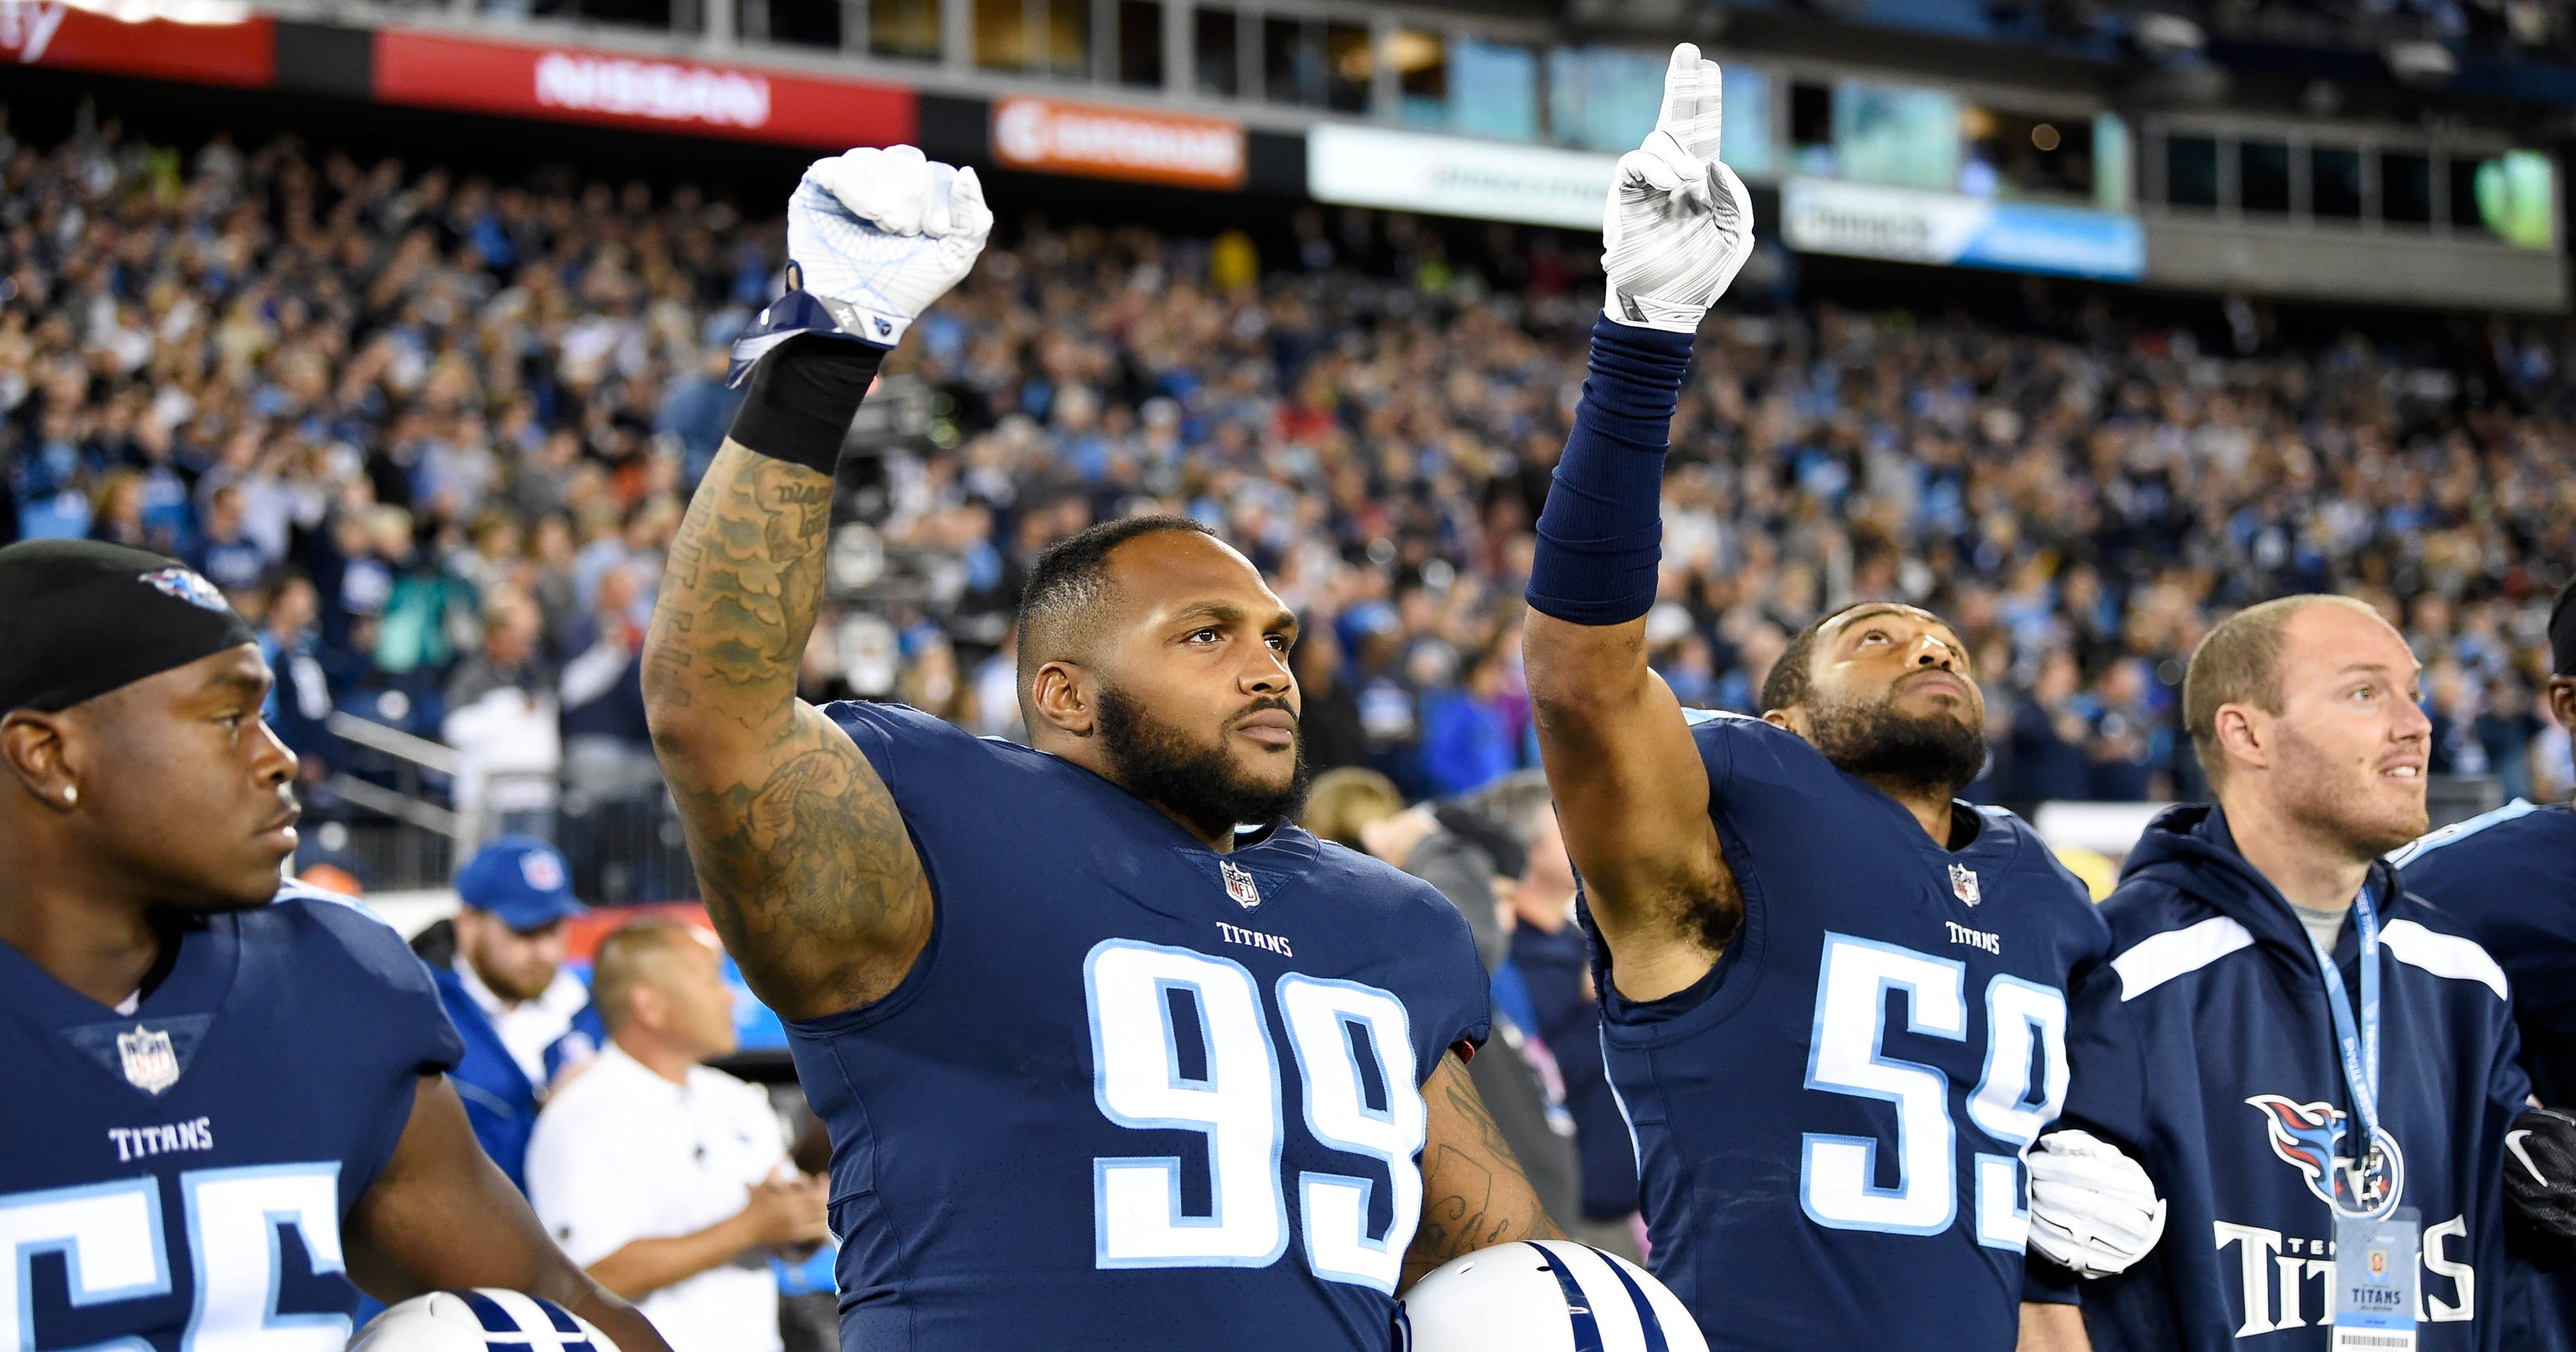 Titans  Jurrell Casey to protest during national anthem   I m going to take  my fine  0456eecfa